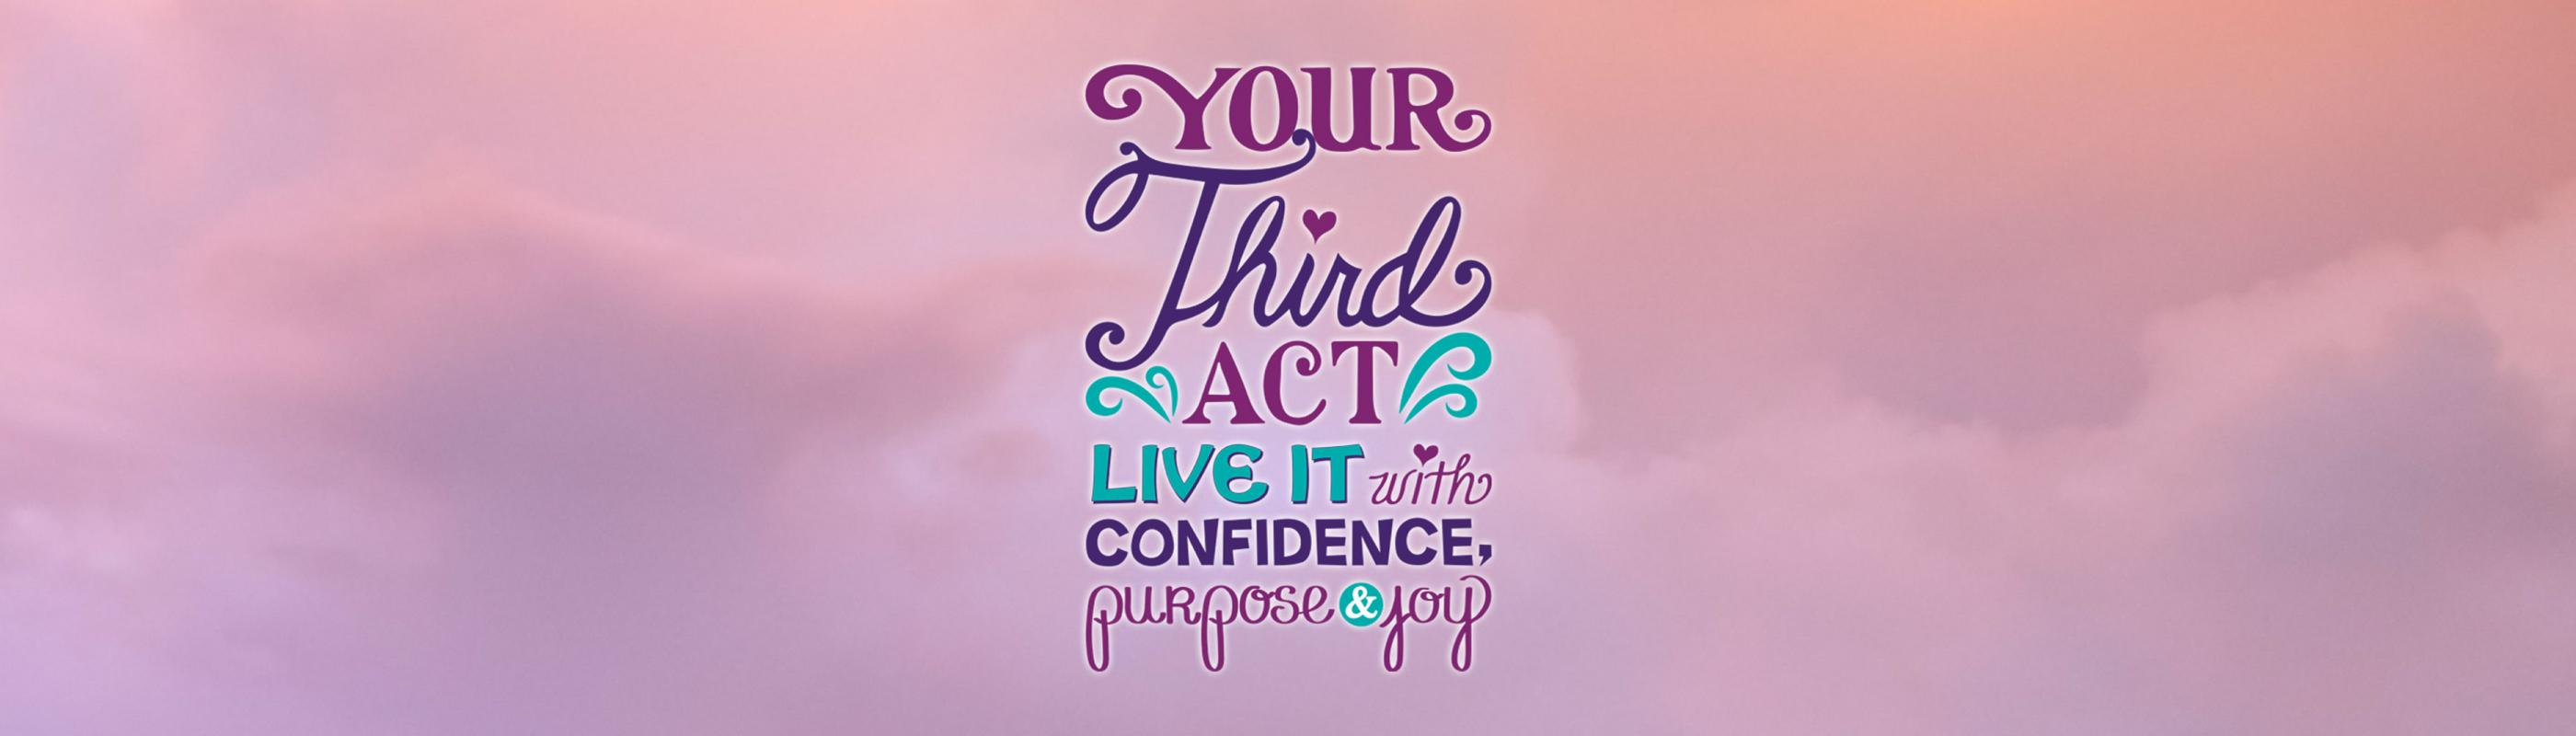 Your Third Act: Live it with Confidence, Purpose & Joy